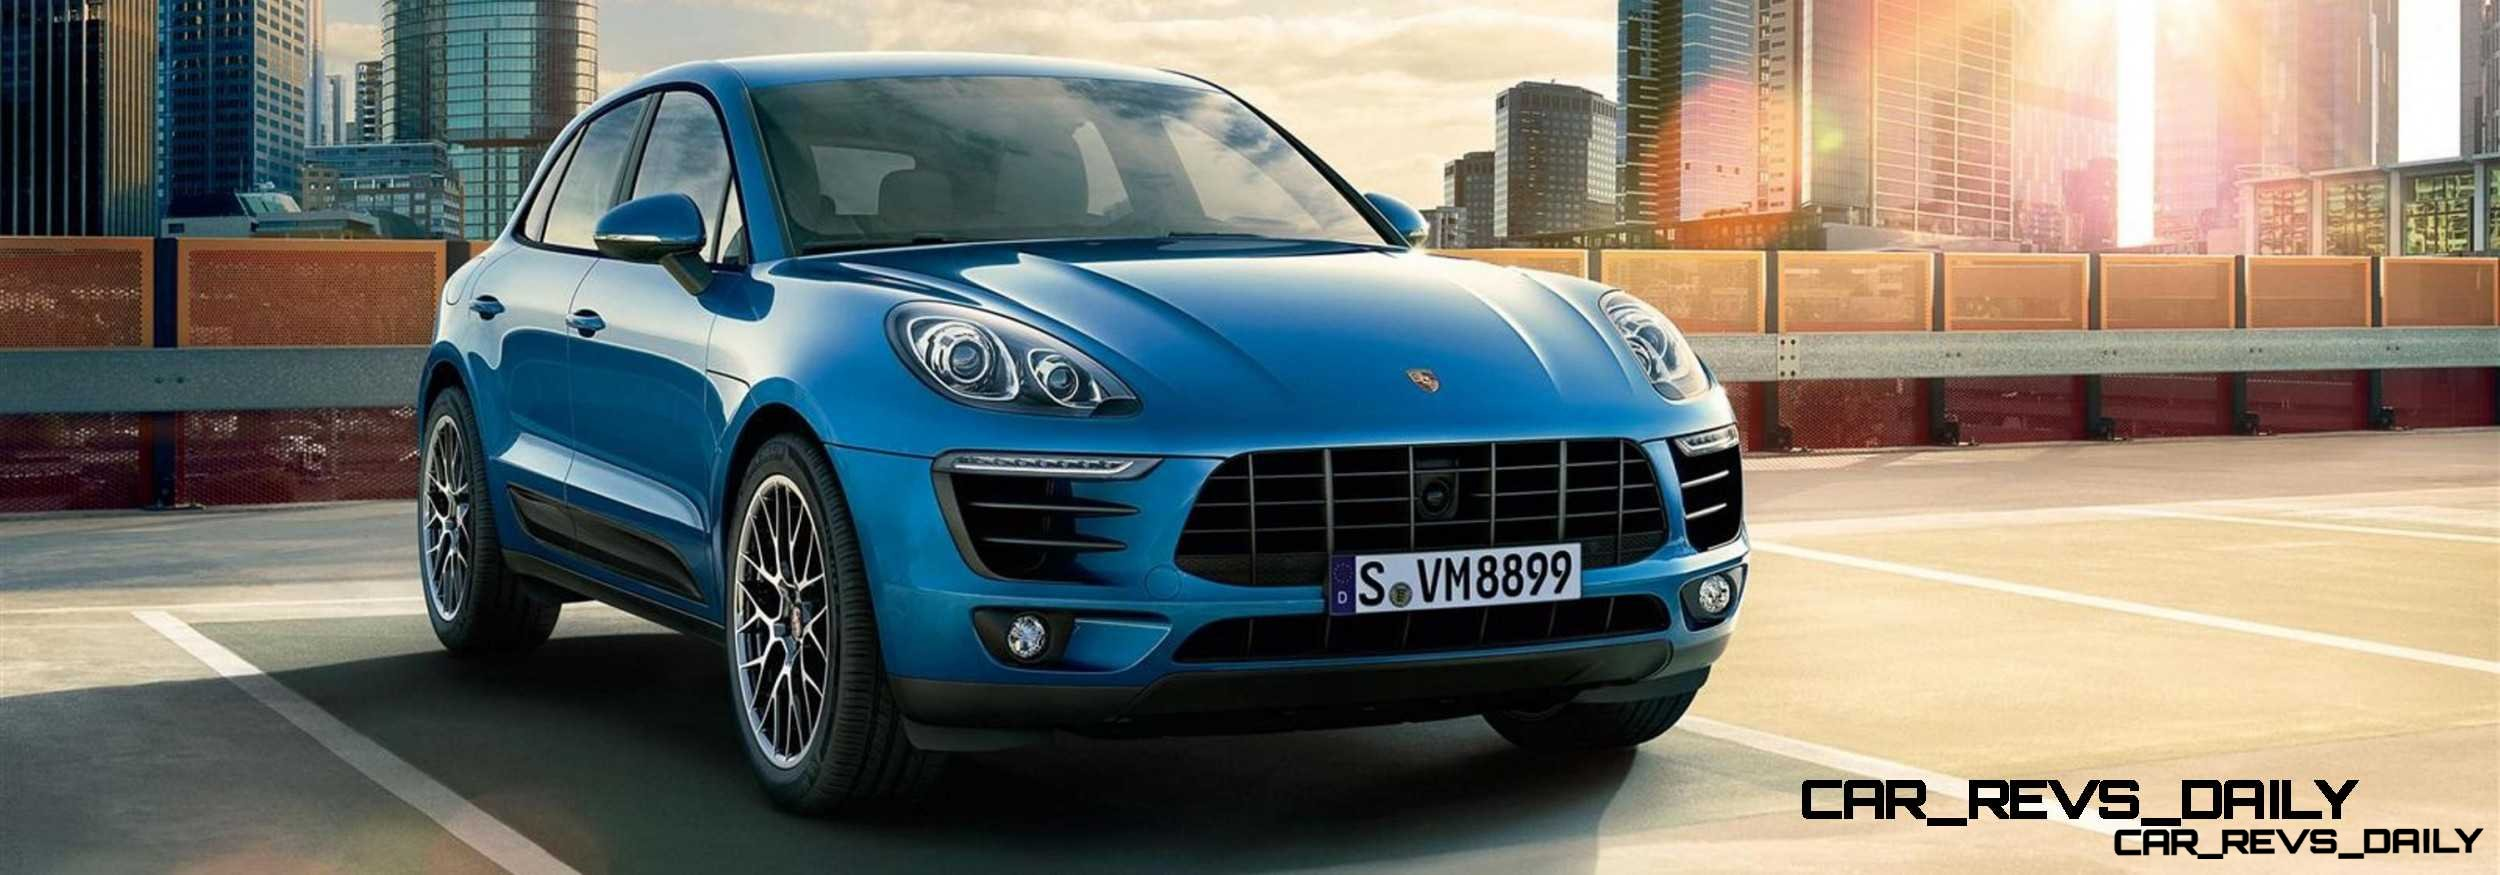 2015 Porsche Macan - Latest Images - CarRevsDaily.com 95